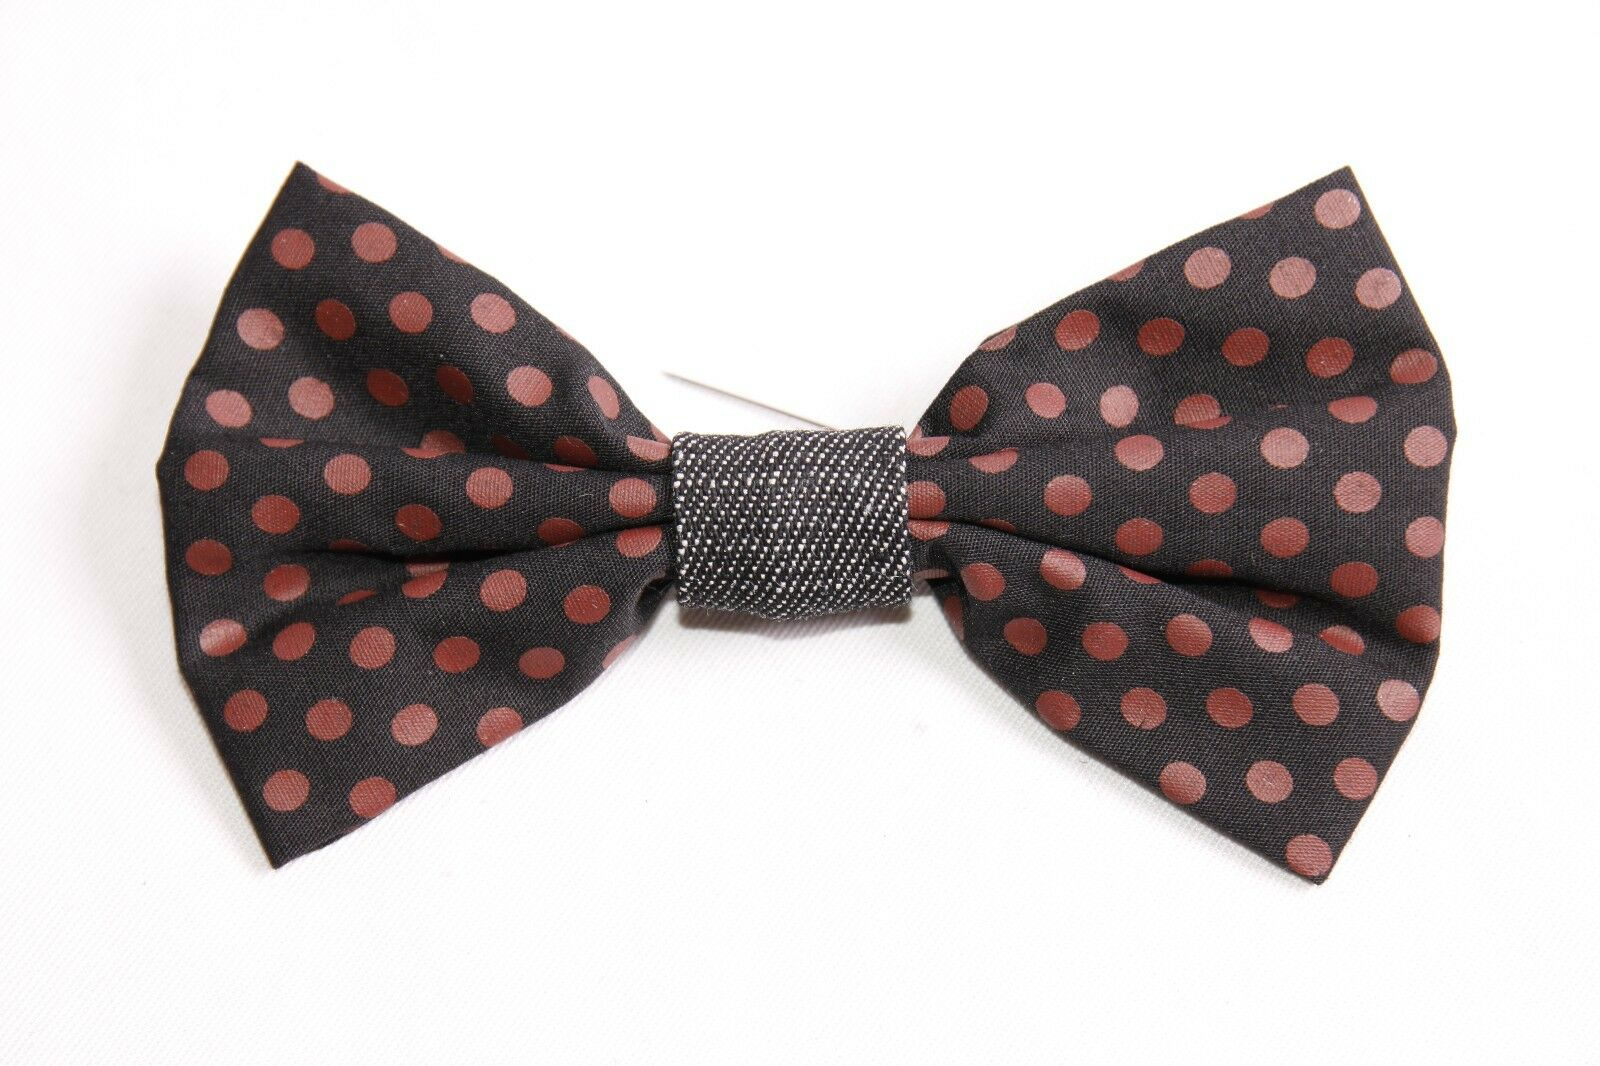 Stylish Modern Male Black Suit Bow Tie with Red Polka Dots Print (S404)